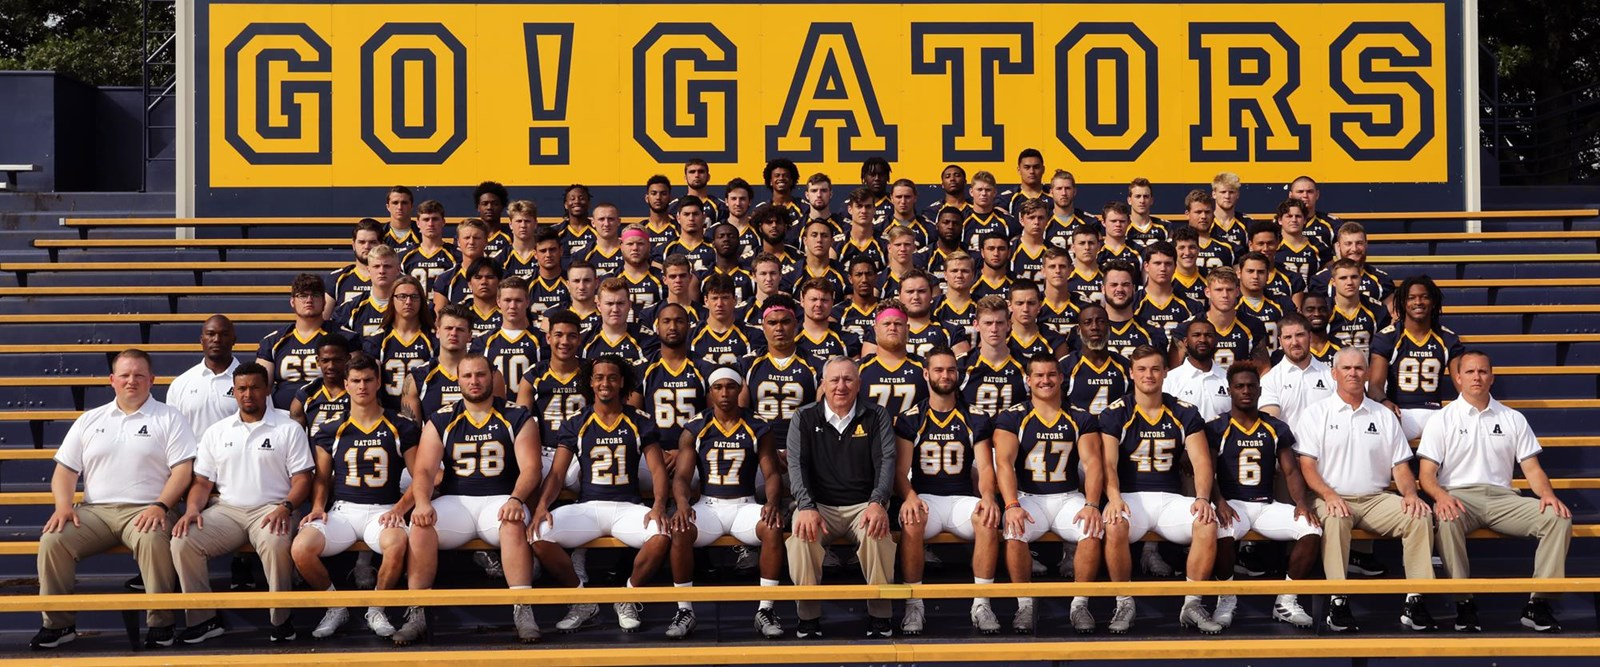 2019 Football Roster - Allegheny College Athletics